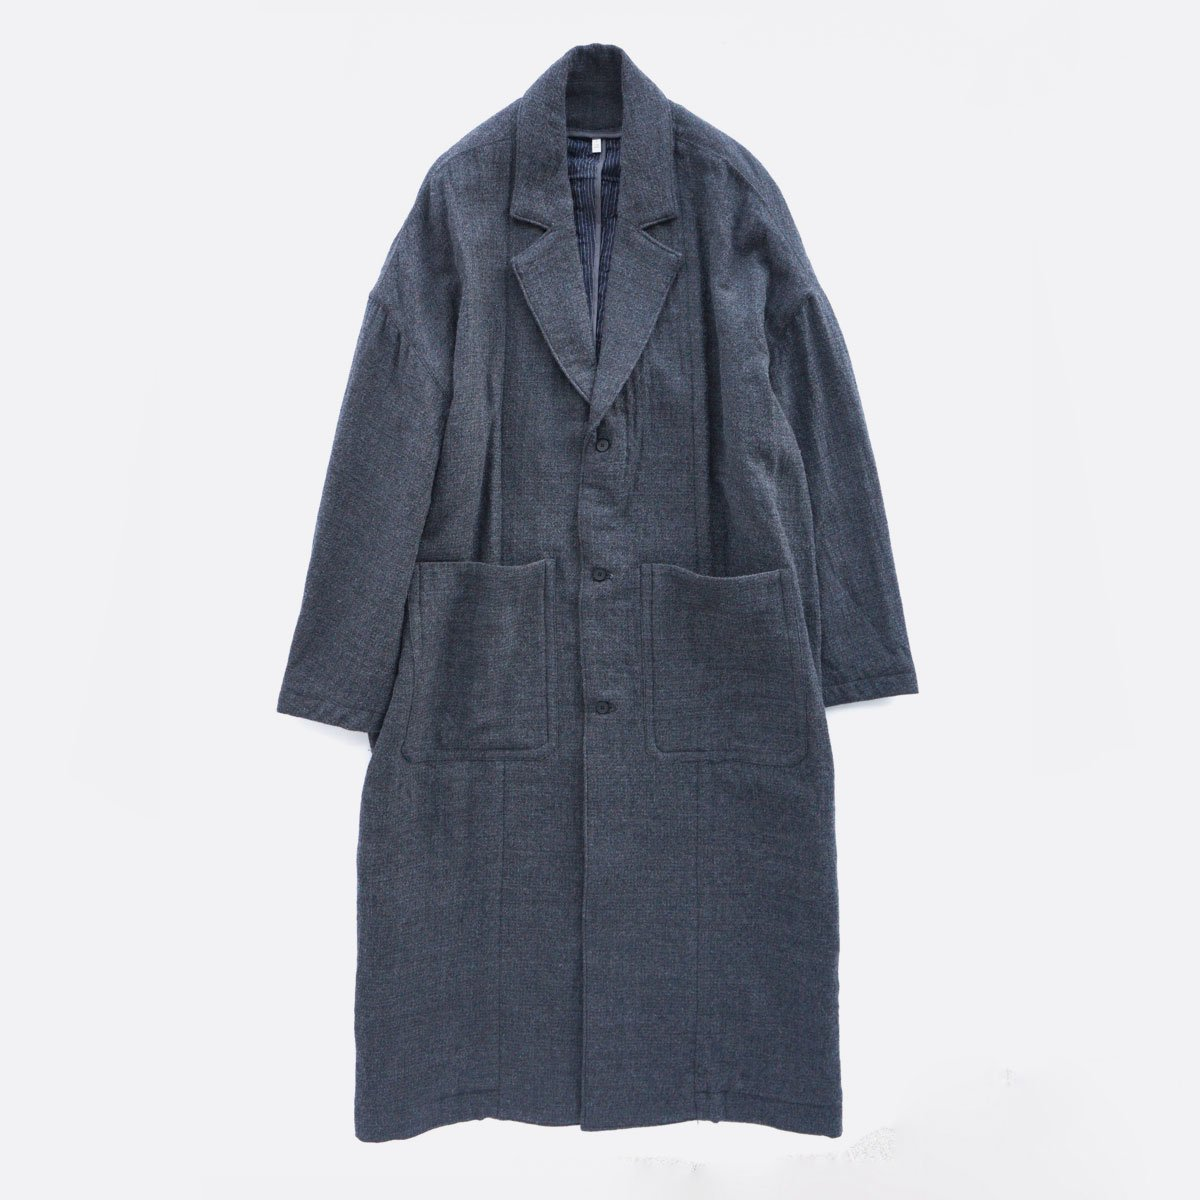 FIRMUM WORSTED WOOL & COTTON DOBBY DOUBLE CLOTH COAT (GREY&BLACK)